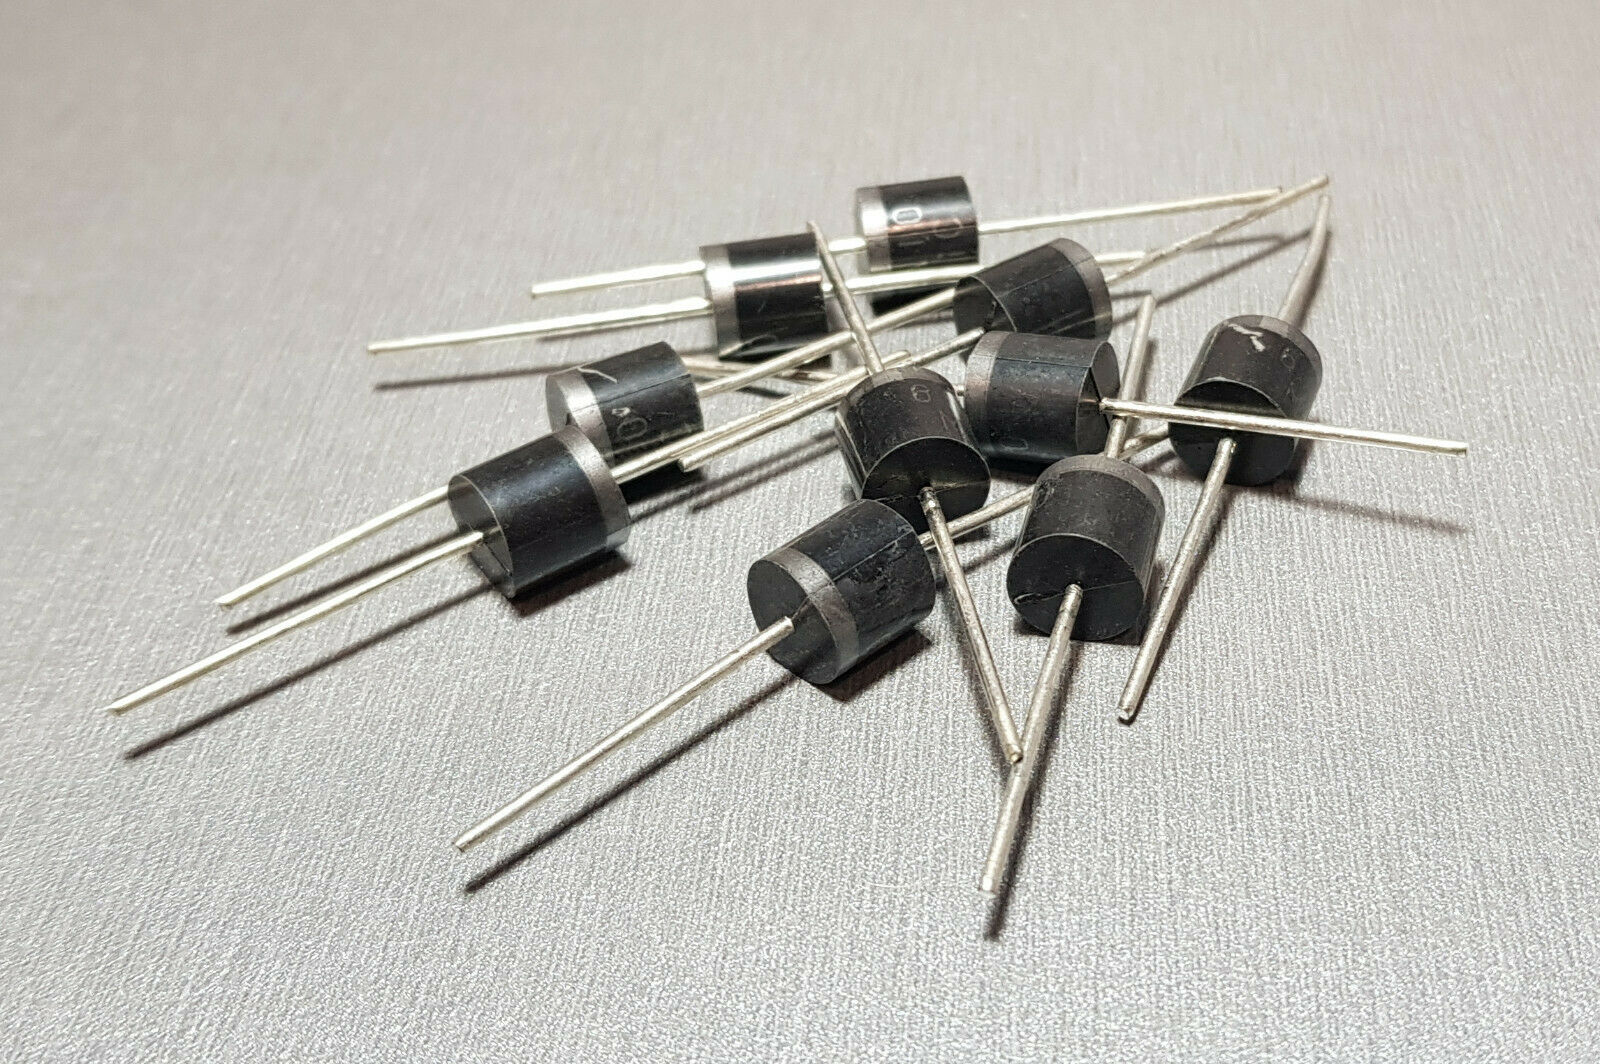 6A10 6A 1000V 1KV 6 Amp Axial Rectifier Diode Pack of 10